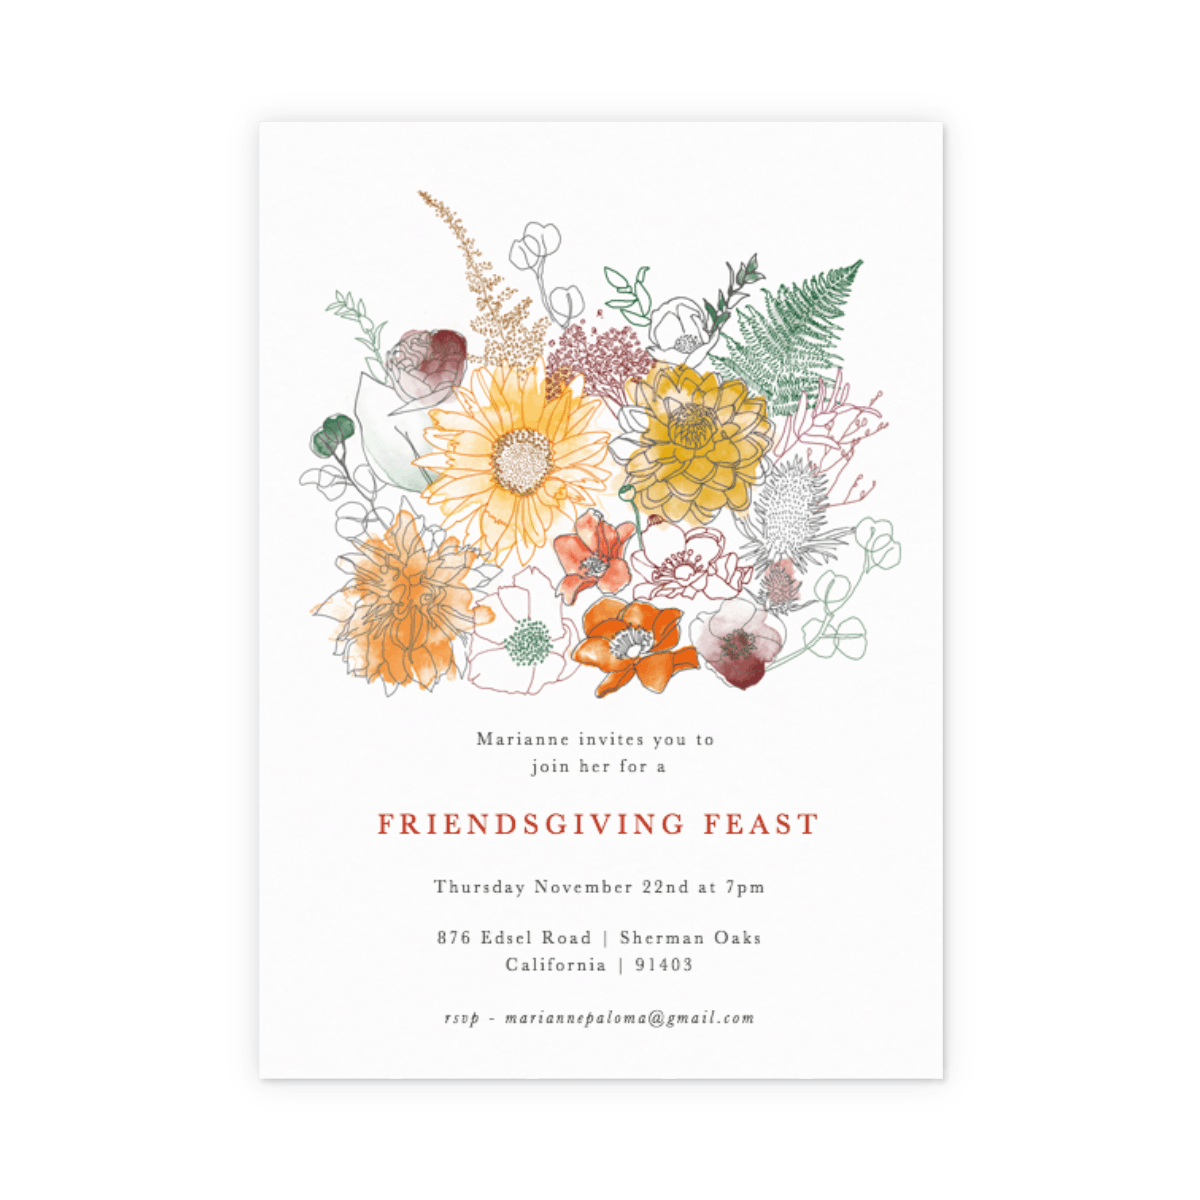 Https%3a%2f%2fwww.papier.com%2fproduct image%2f50747%2f4%2fthanksgiving bouquet 12423 front 1539965248.png?ixlib=rb 1.1